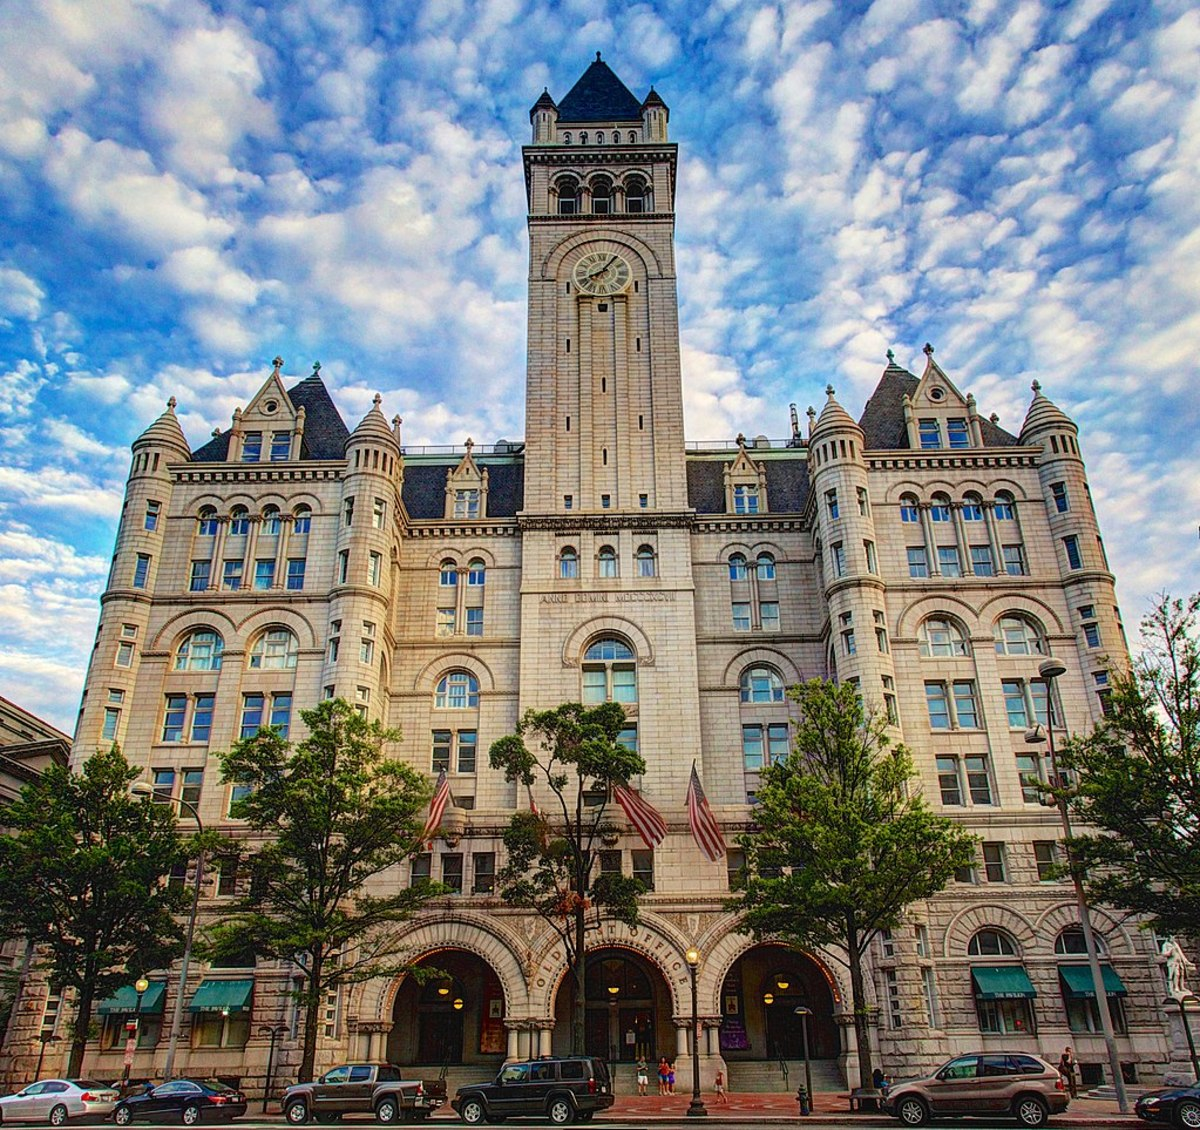 The Old Post Office tower in the Trump Hotel offers a beautiful view of the city.